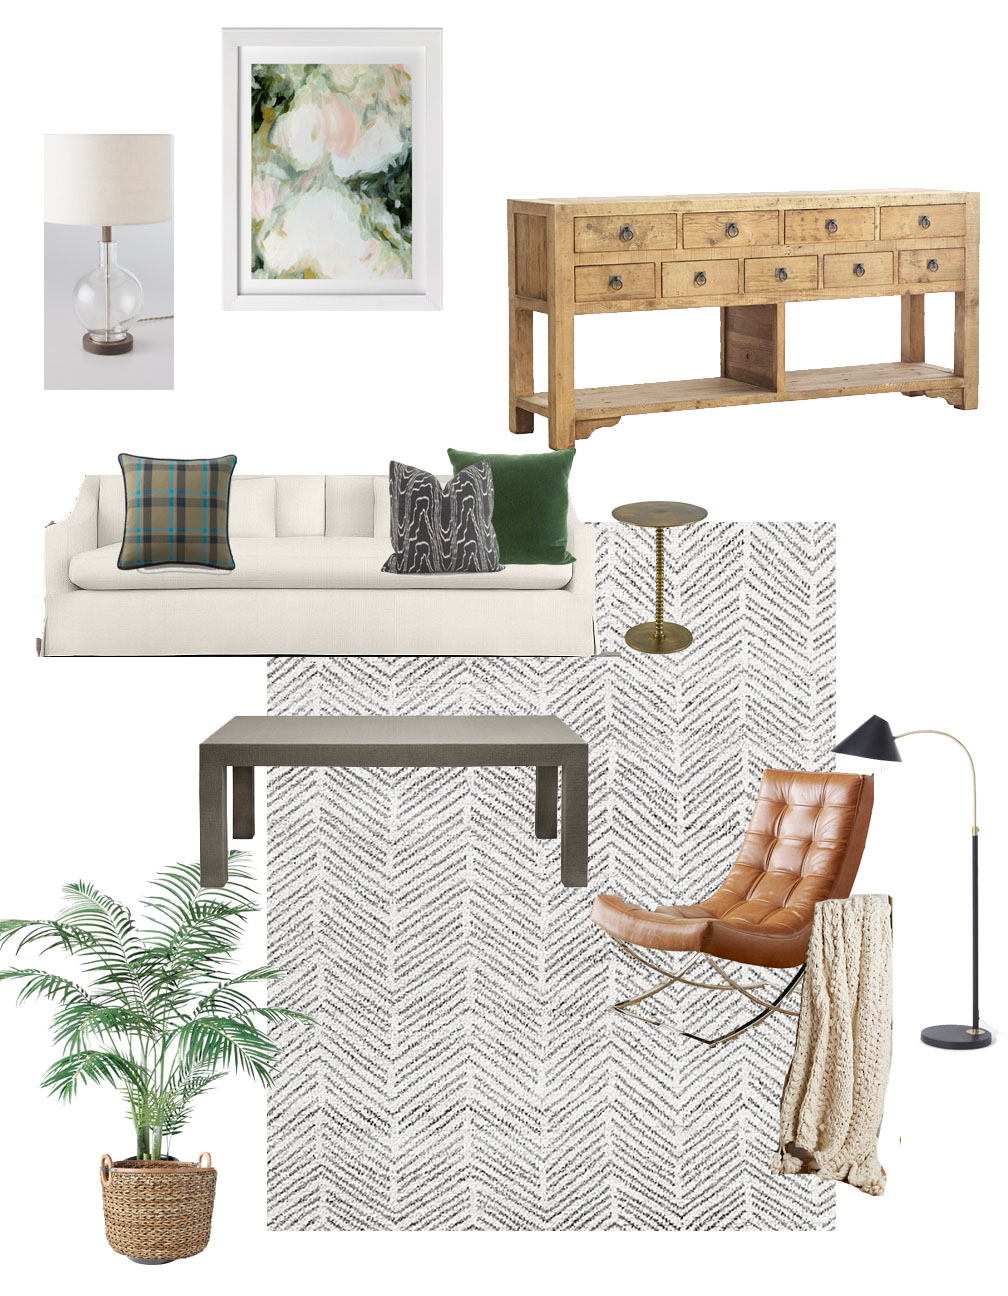 ... Living Room Design Board. Lamp: Schoolhouse Electric